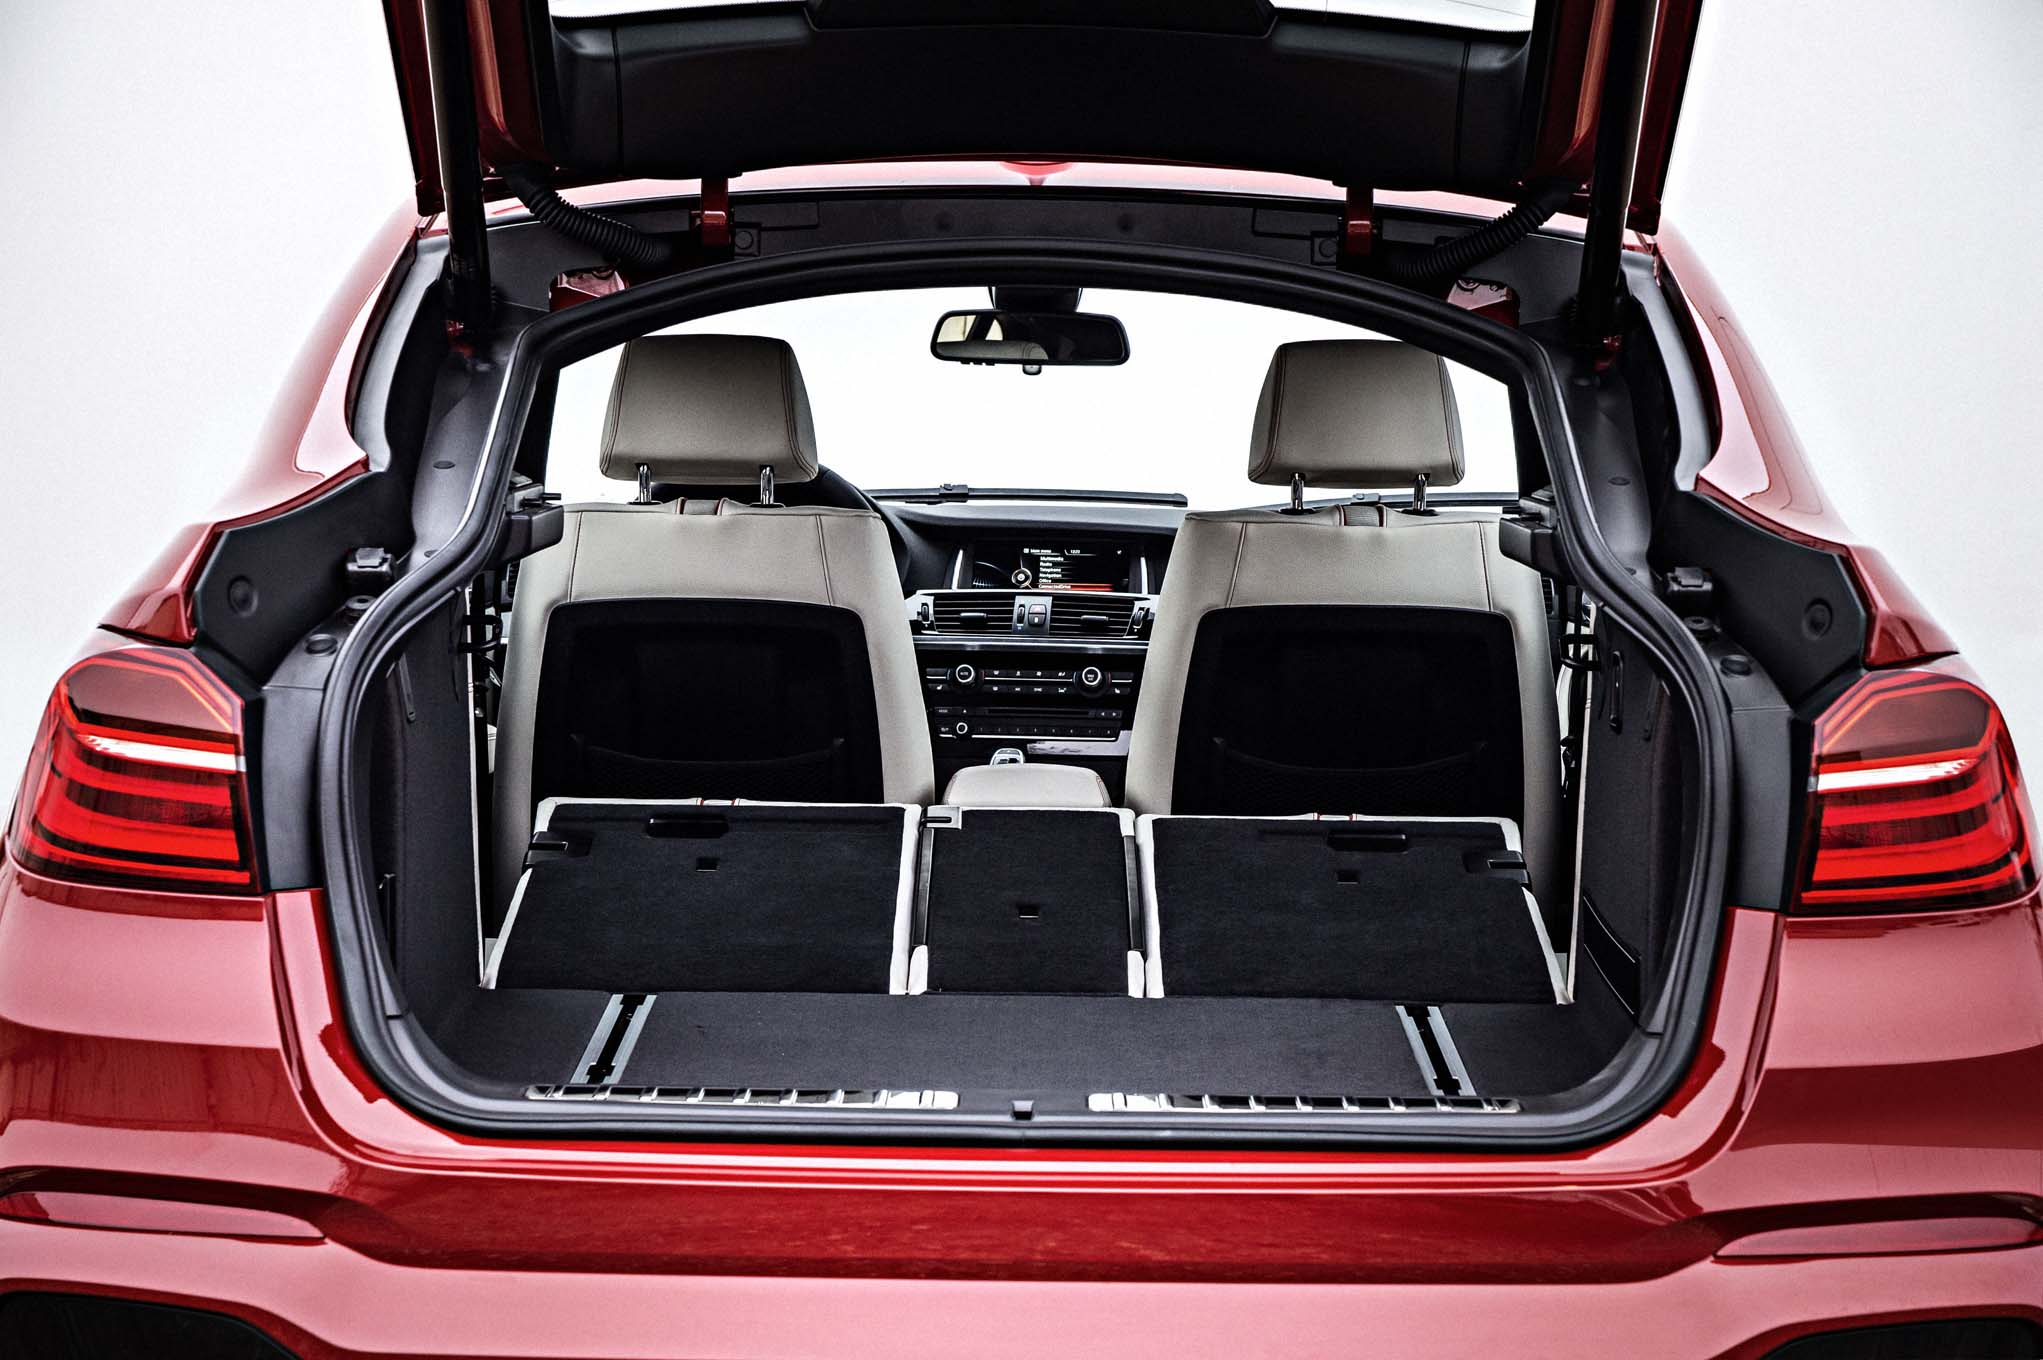 2015 Bmw X4 Rear Seat Down And Trunk View (Photo 9 of 13)